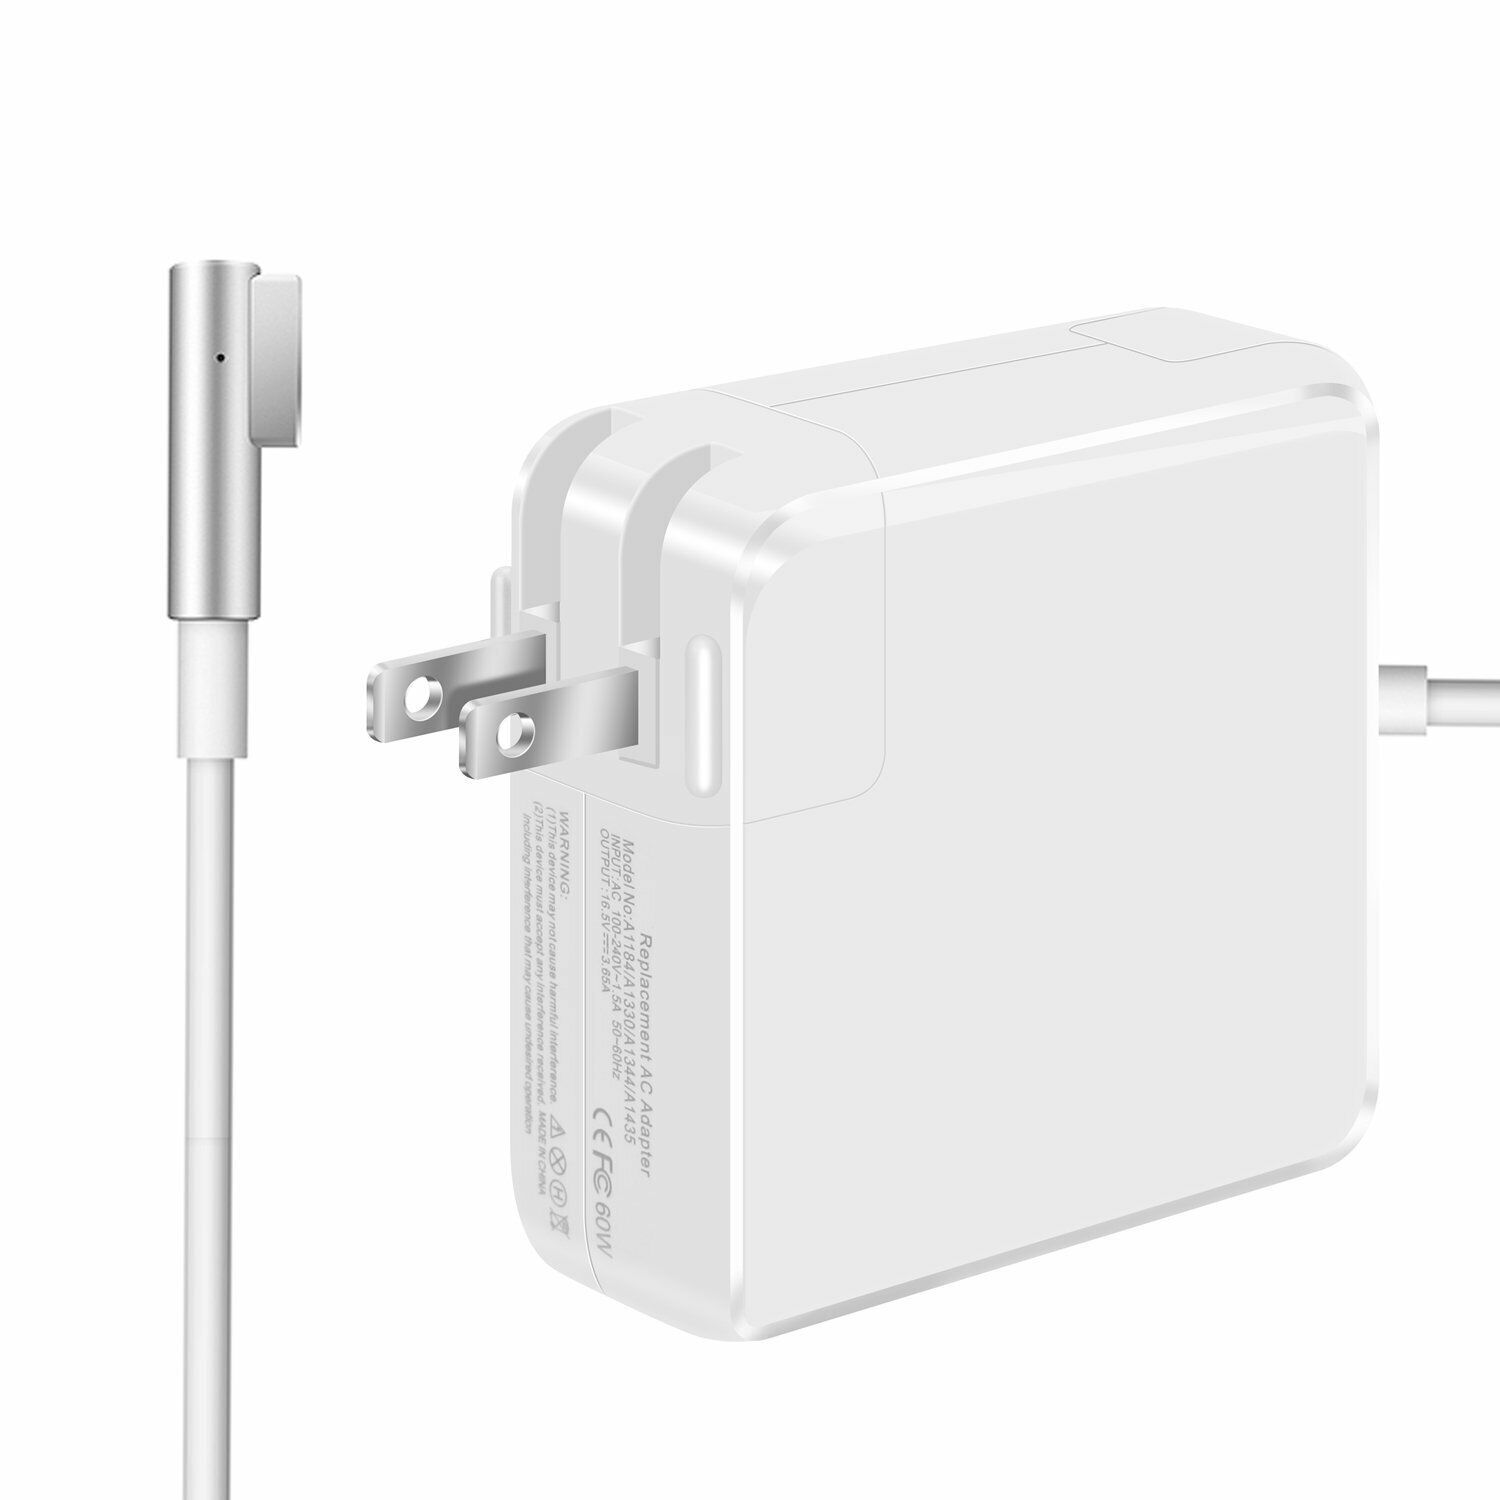 Macbook Pro Charger,New 85W L-Tip Power Adapter Charger for